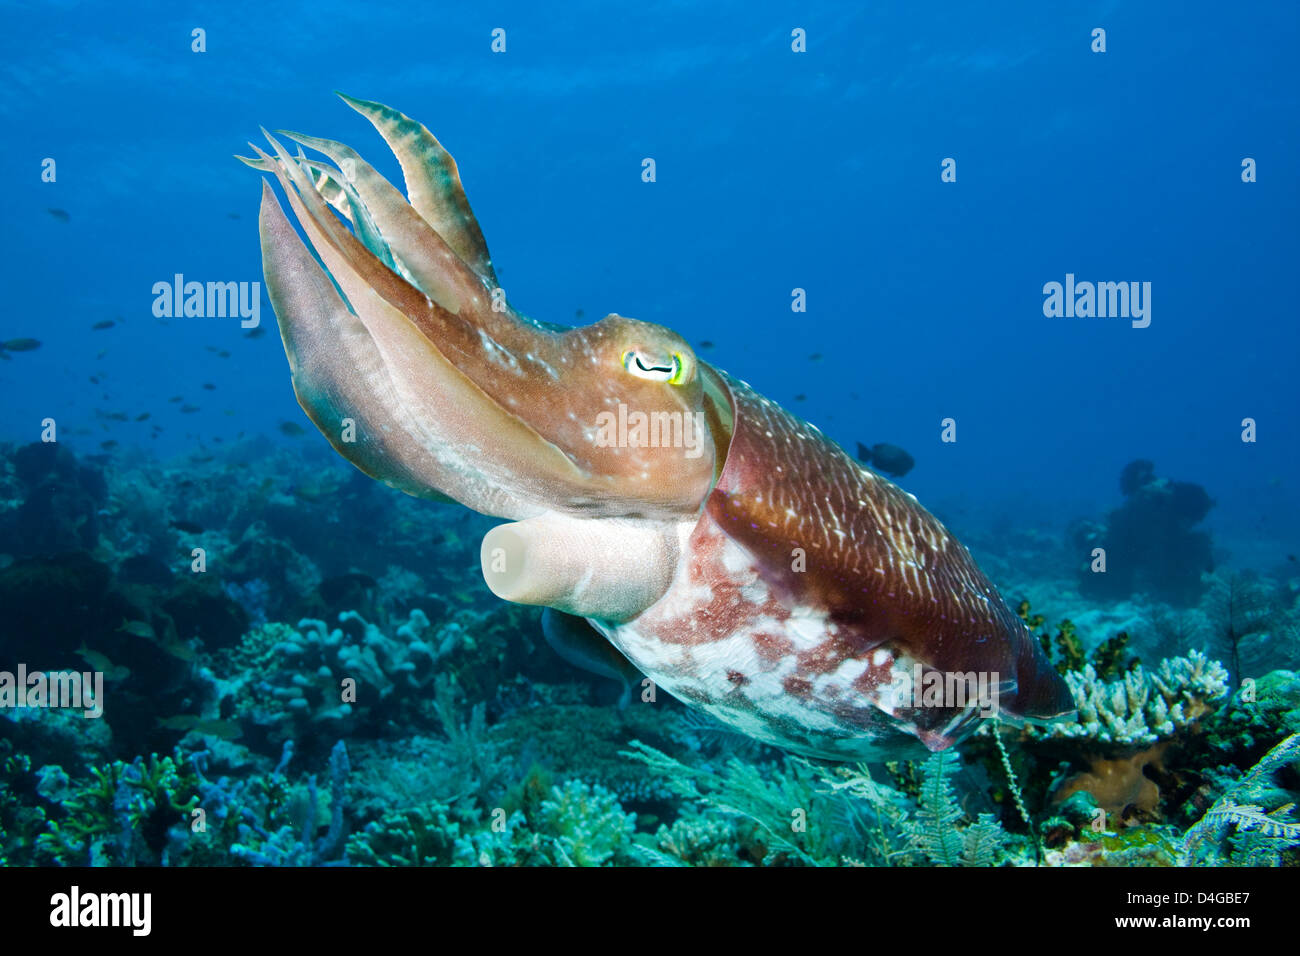 A broadclub cuttlefish, Sepia latimanus, Komodo, Indonesia. - Stock Image